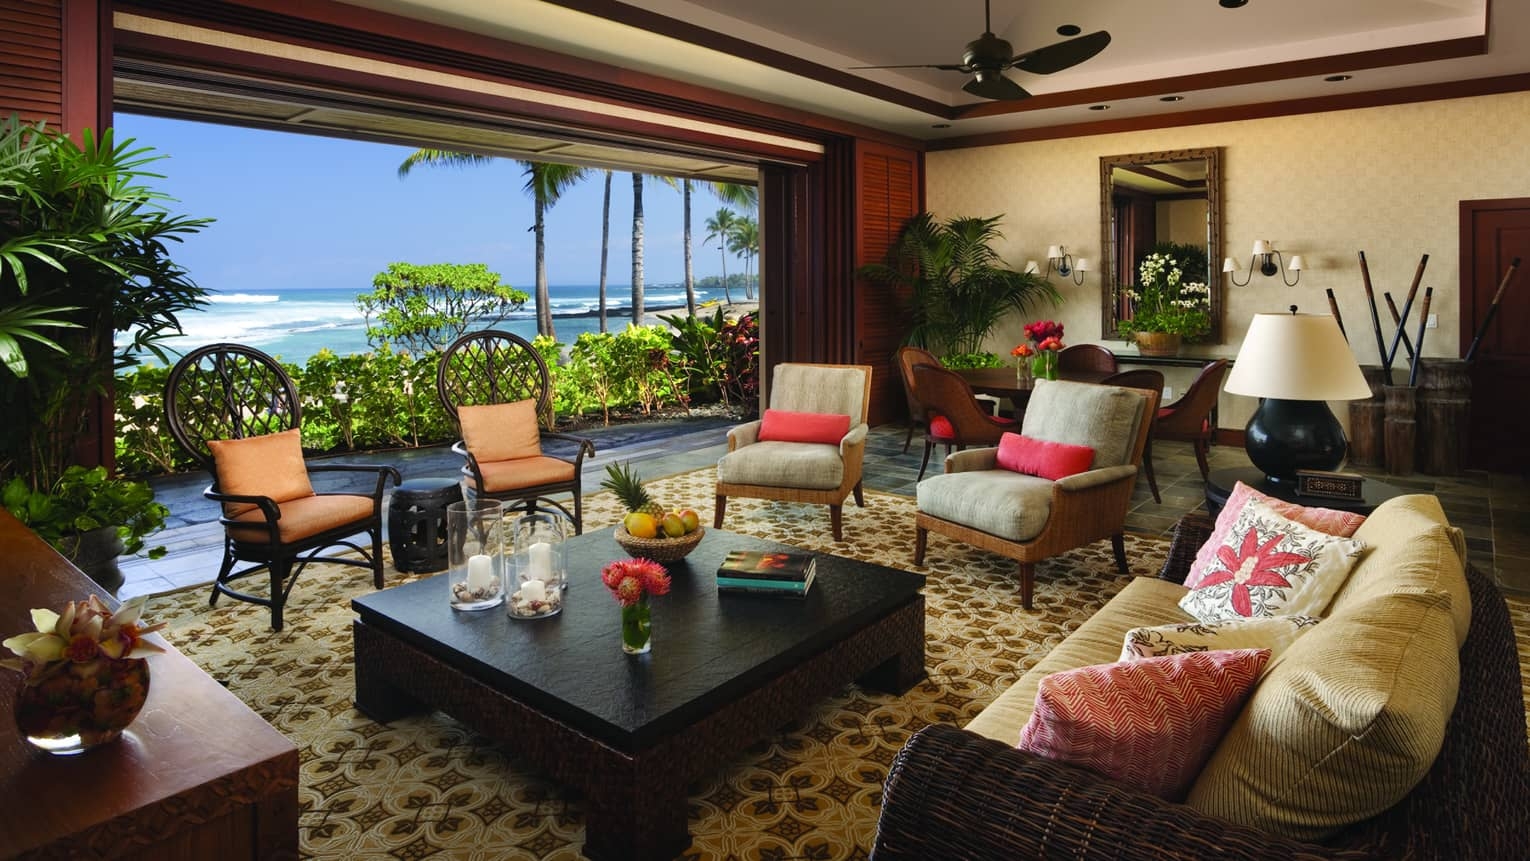 Ho'onanea Villa living room wicker sofa, cushioned chairs by open wall, ocean view